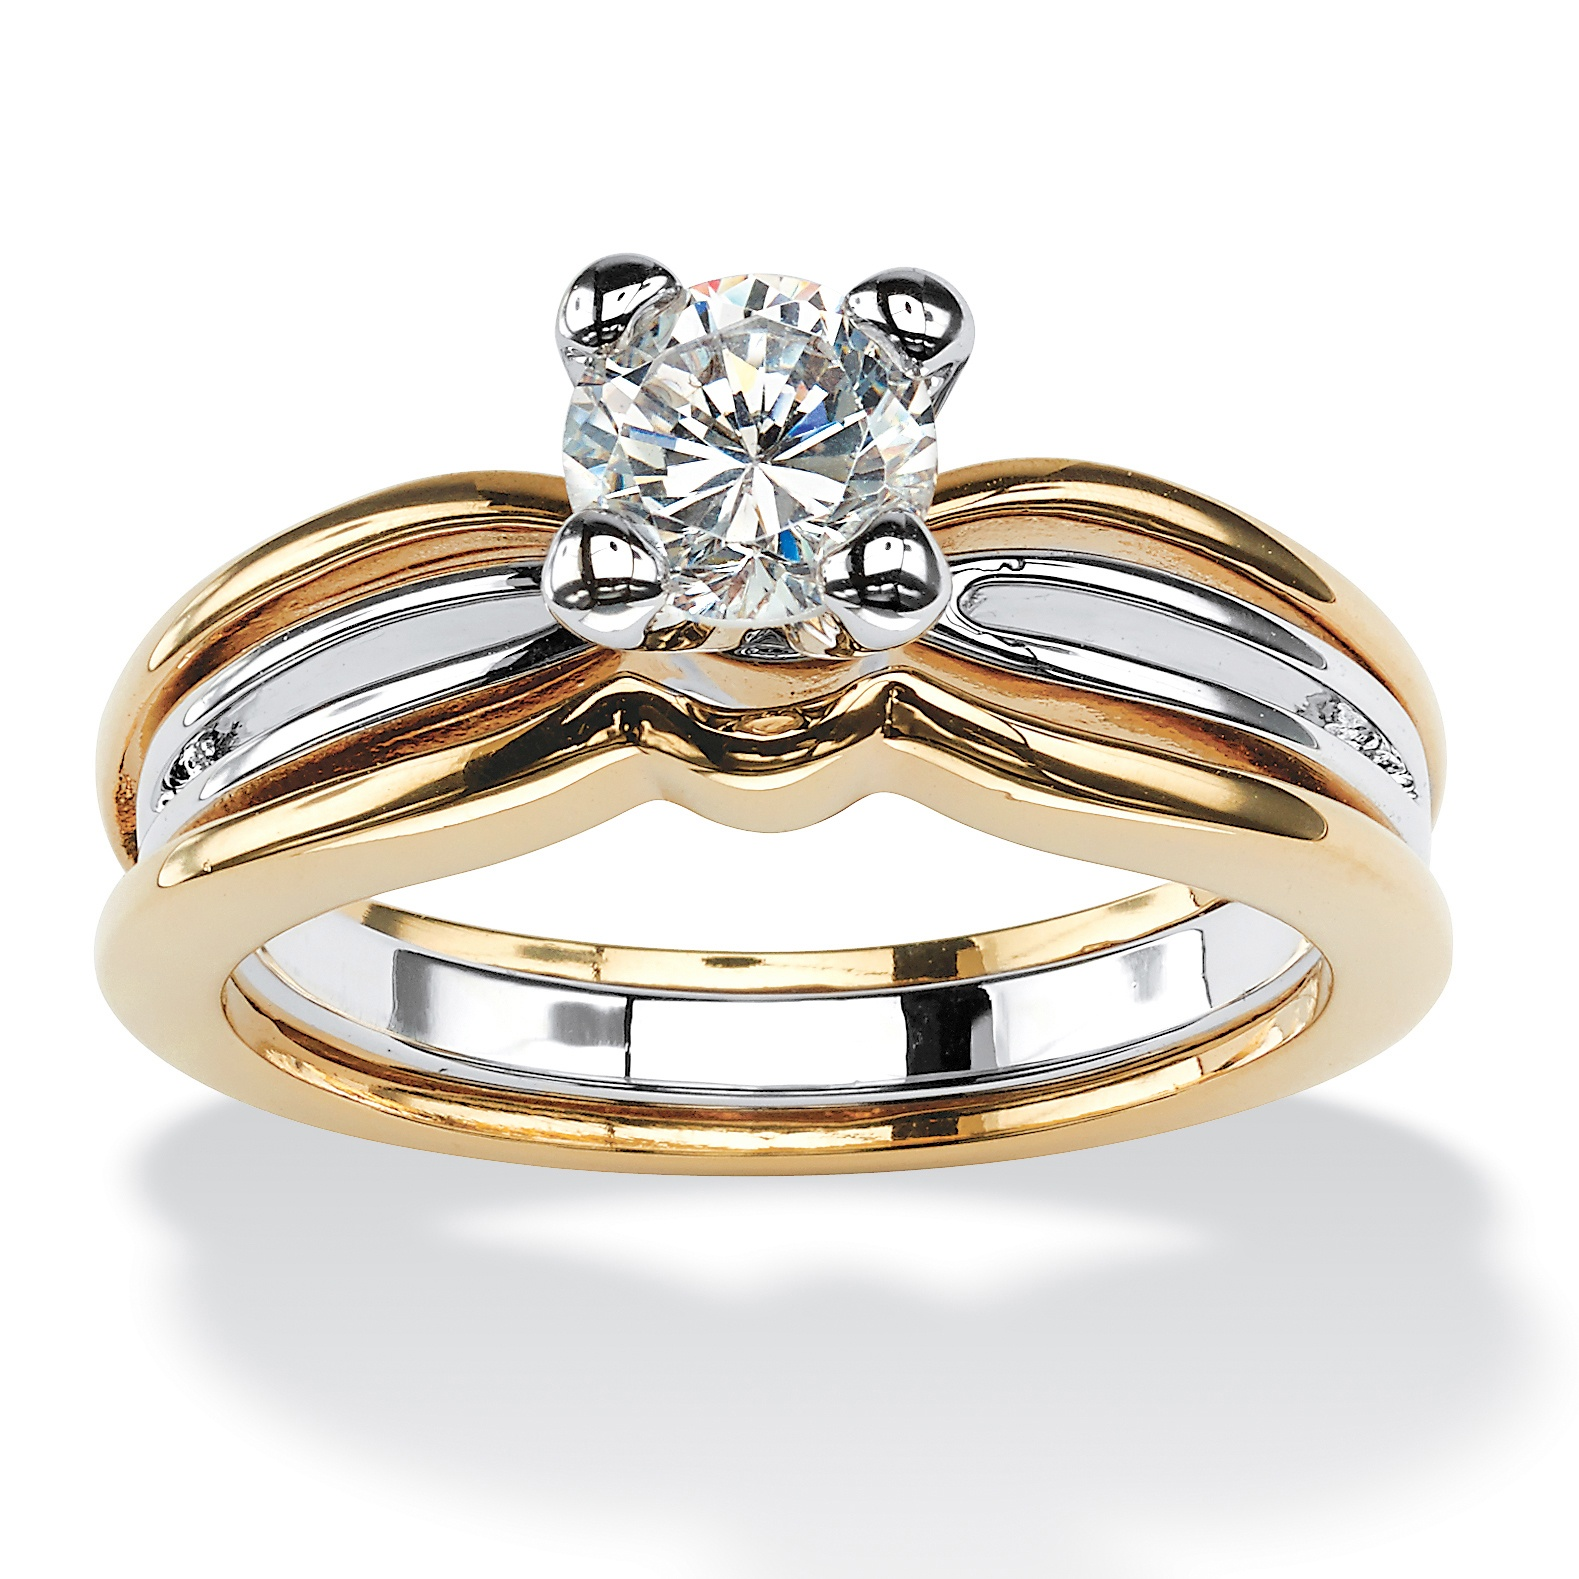 20993c314 1 TCW Round Cubic Zirconia Solitaire Engagement Ring in 18k Gold-Plated